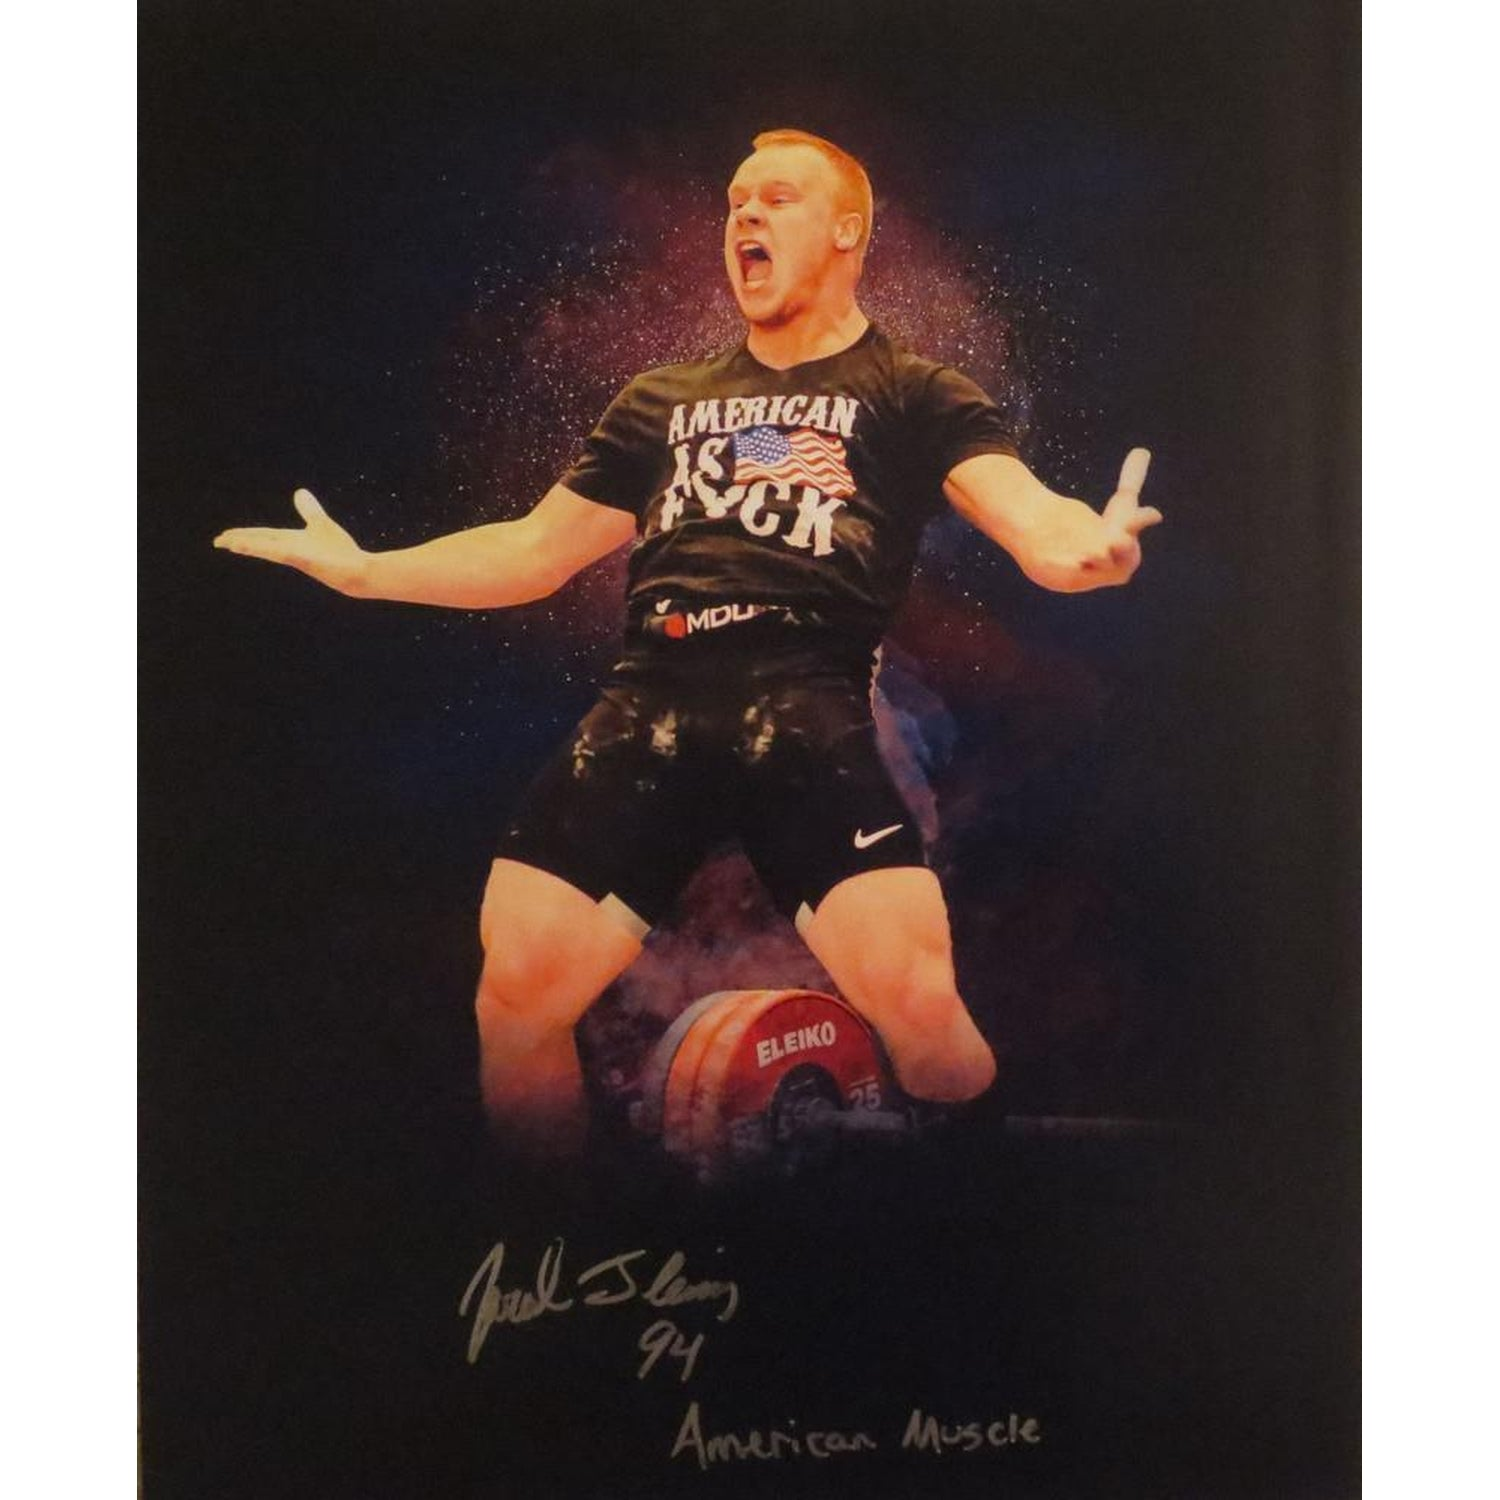 Jared Fleming Autographed USA Weightlifting American Record 170 Snatch Signed 16x20 Photo 12-Powers Sports Memorabilia